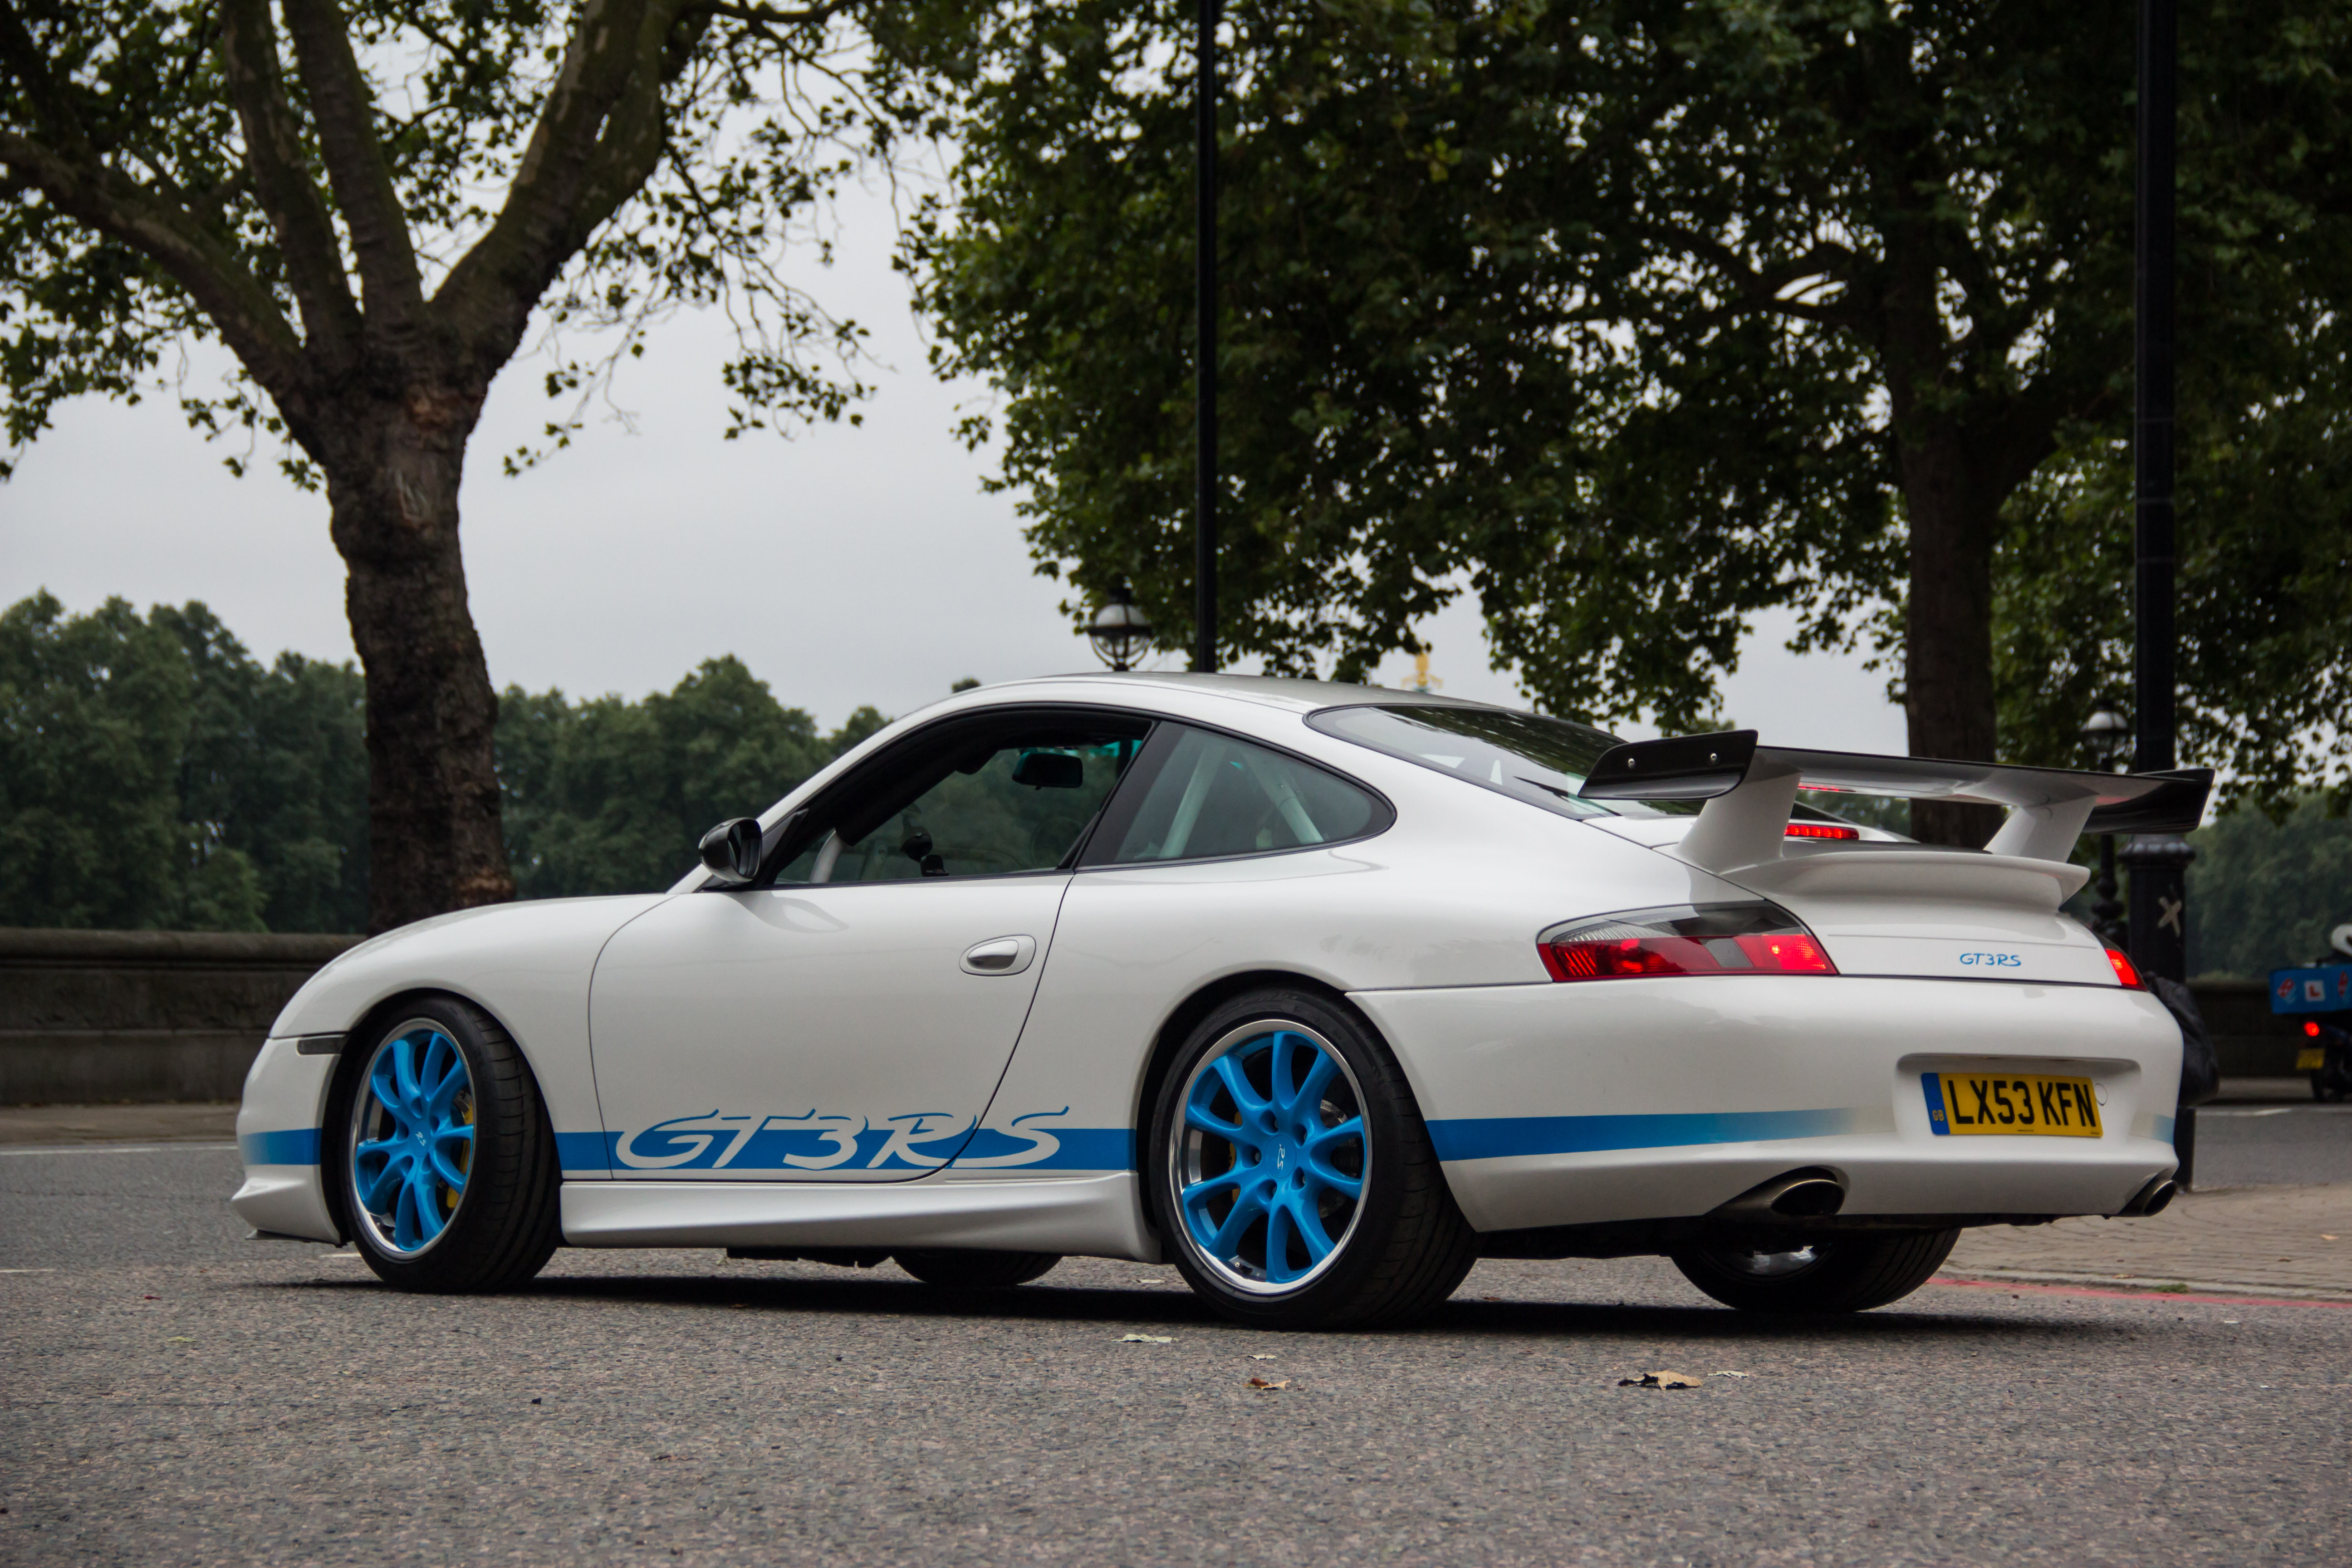 File 2003 Lhd Gt3 Rs White And Blue 7921190936 Jpg